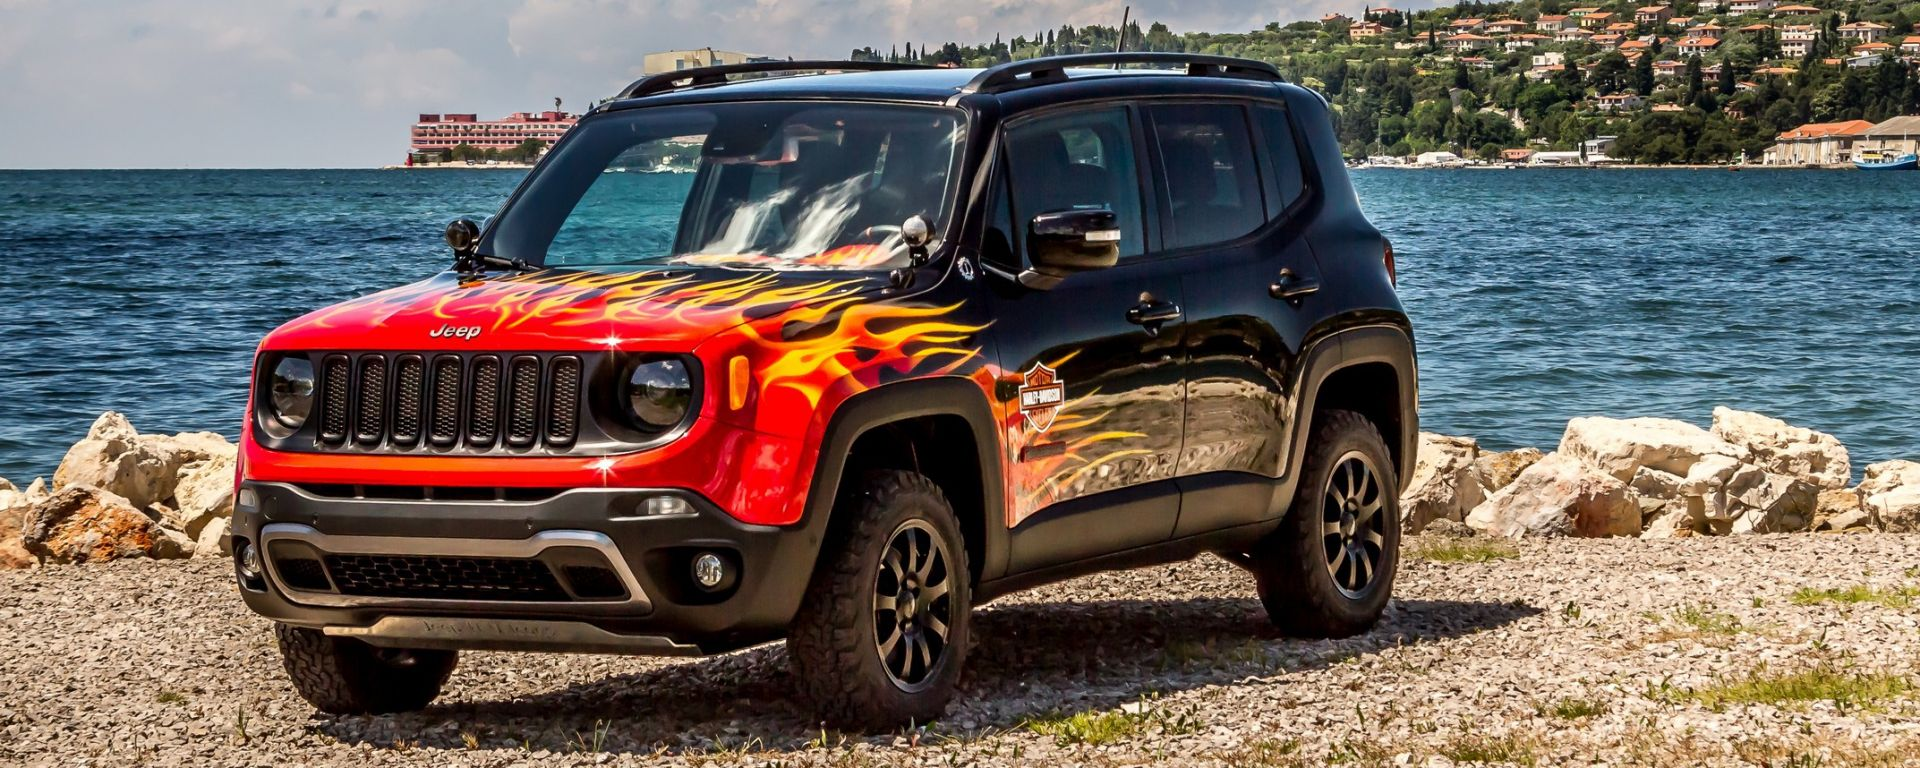 Jeep Renegade Hell's Revenge: una show car firmata Garage Italia Customs